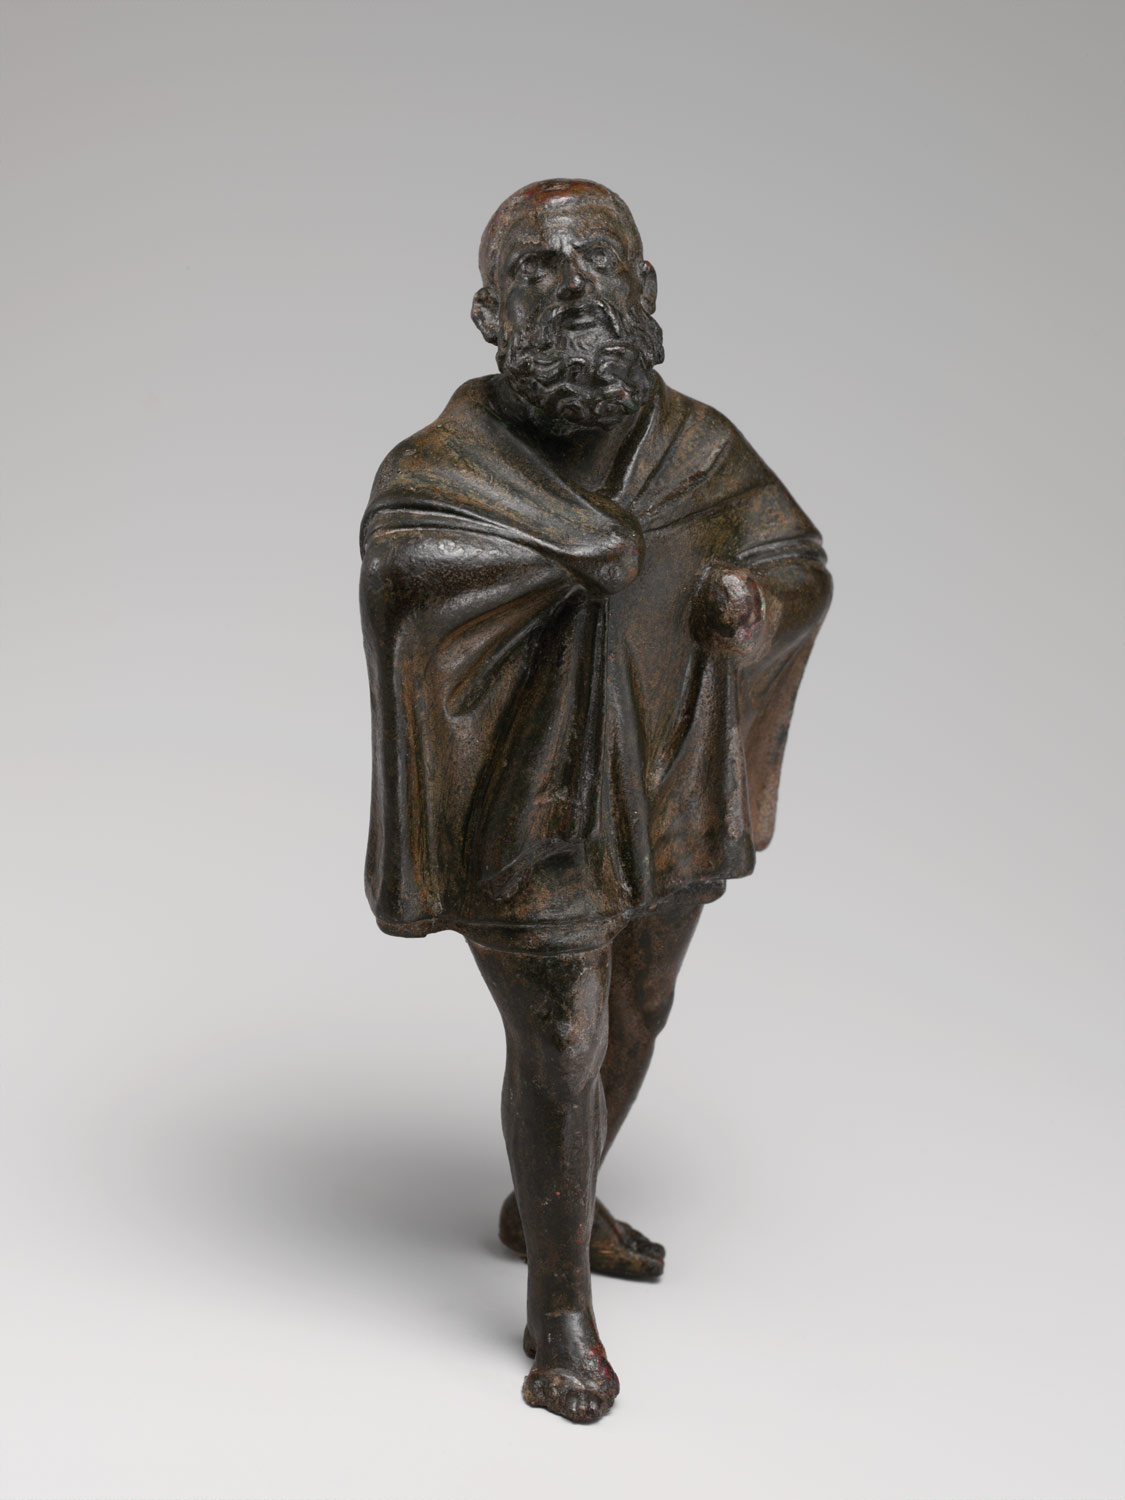 Statuette of a draped man